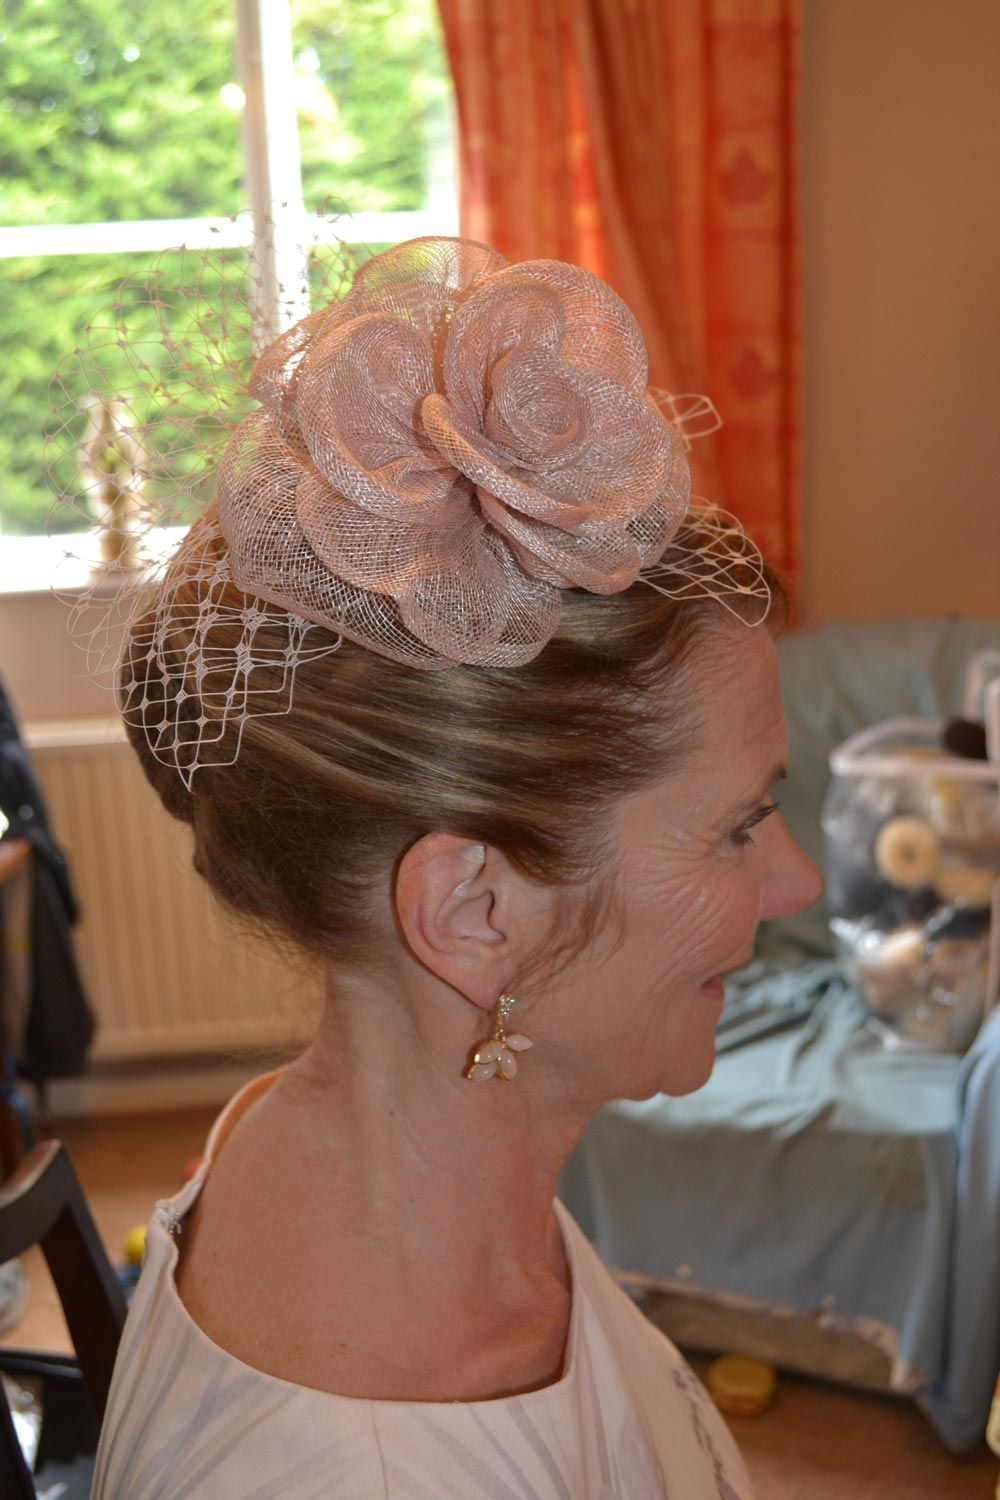 33 of the Most Beautiful Wedding Guest Hairstyles | Simple wedding hairstyles, Wedding guest ...